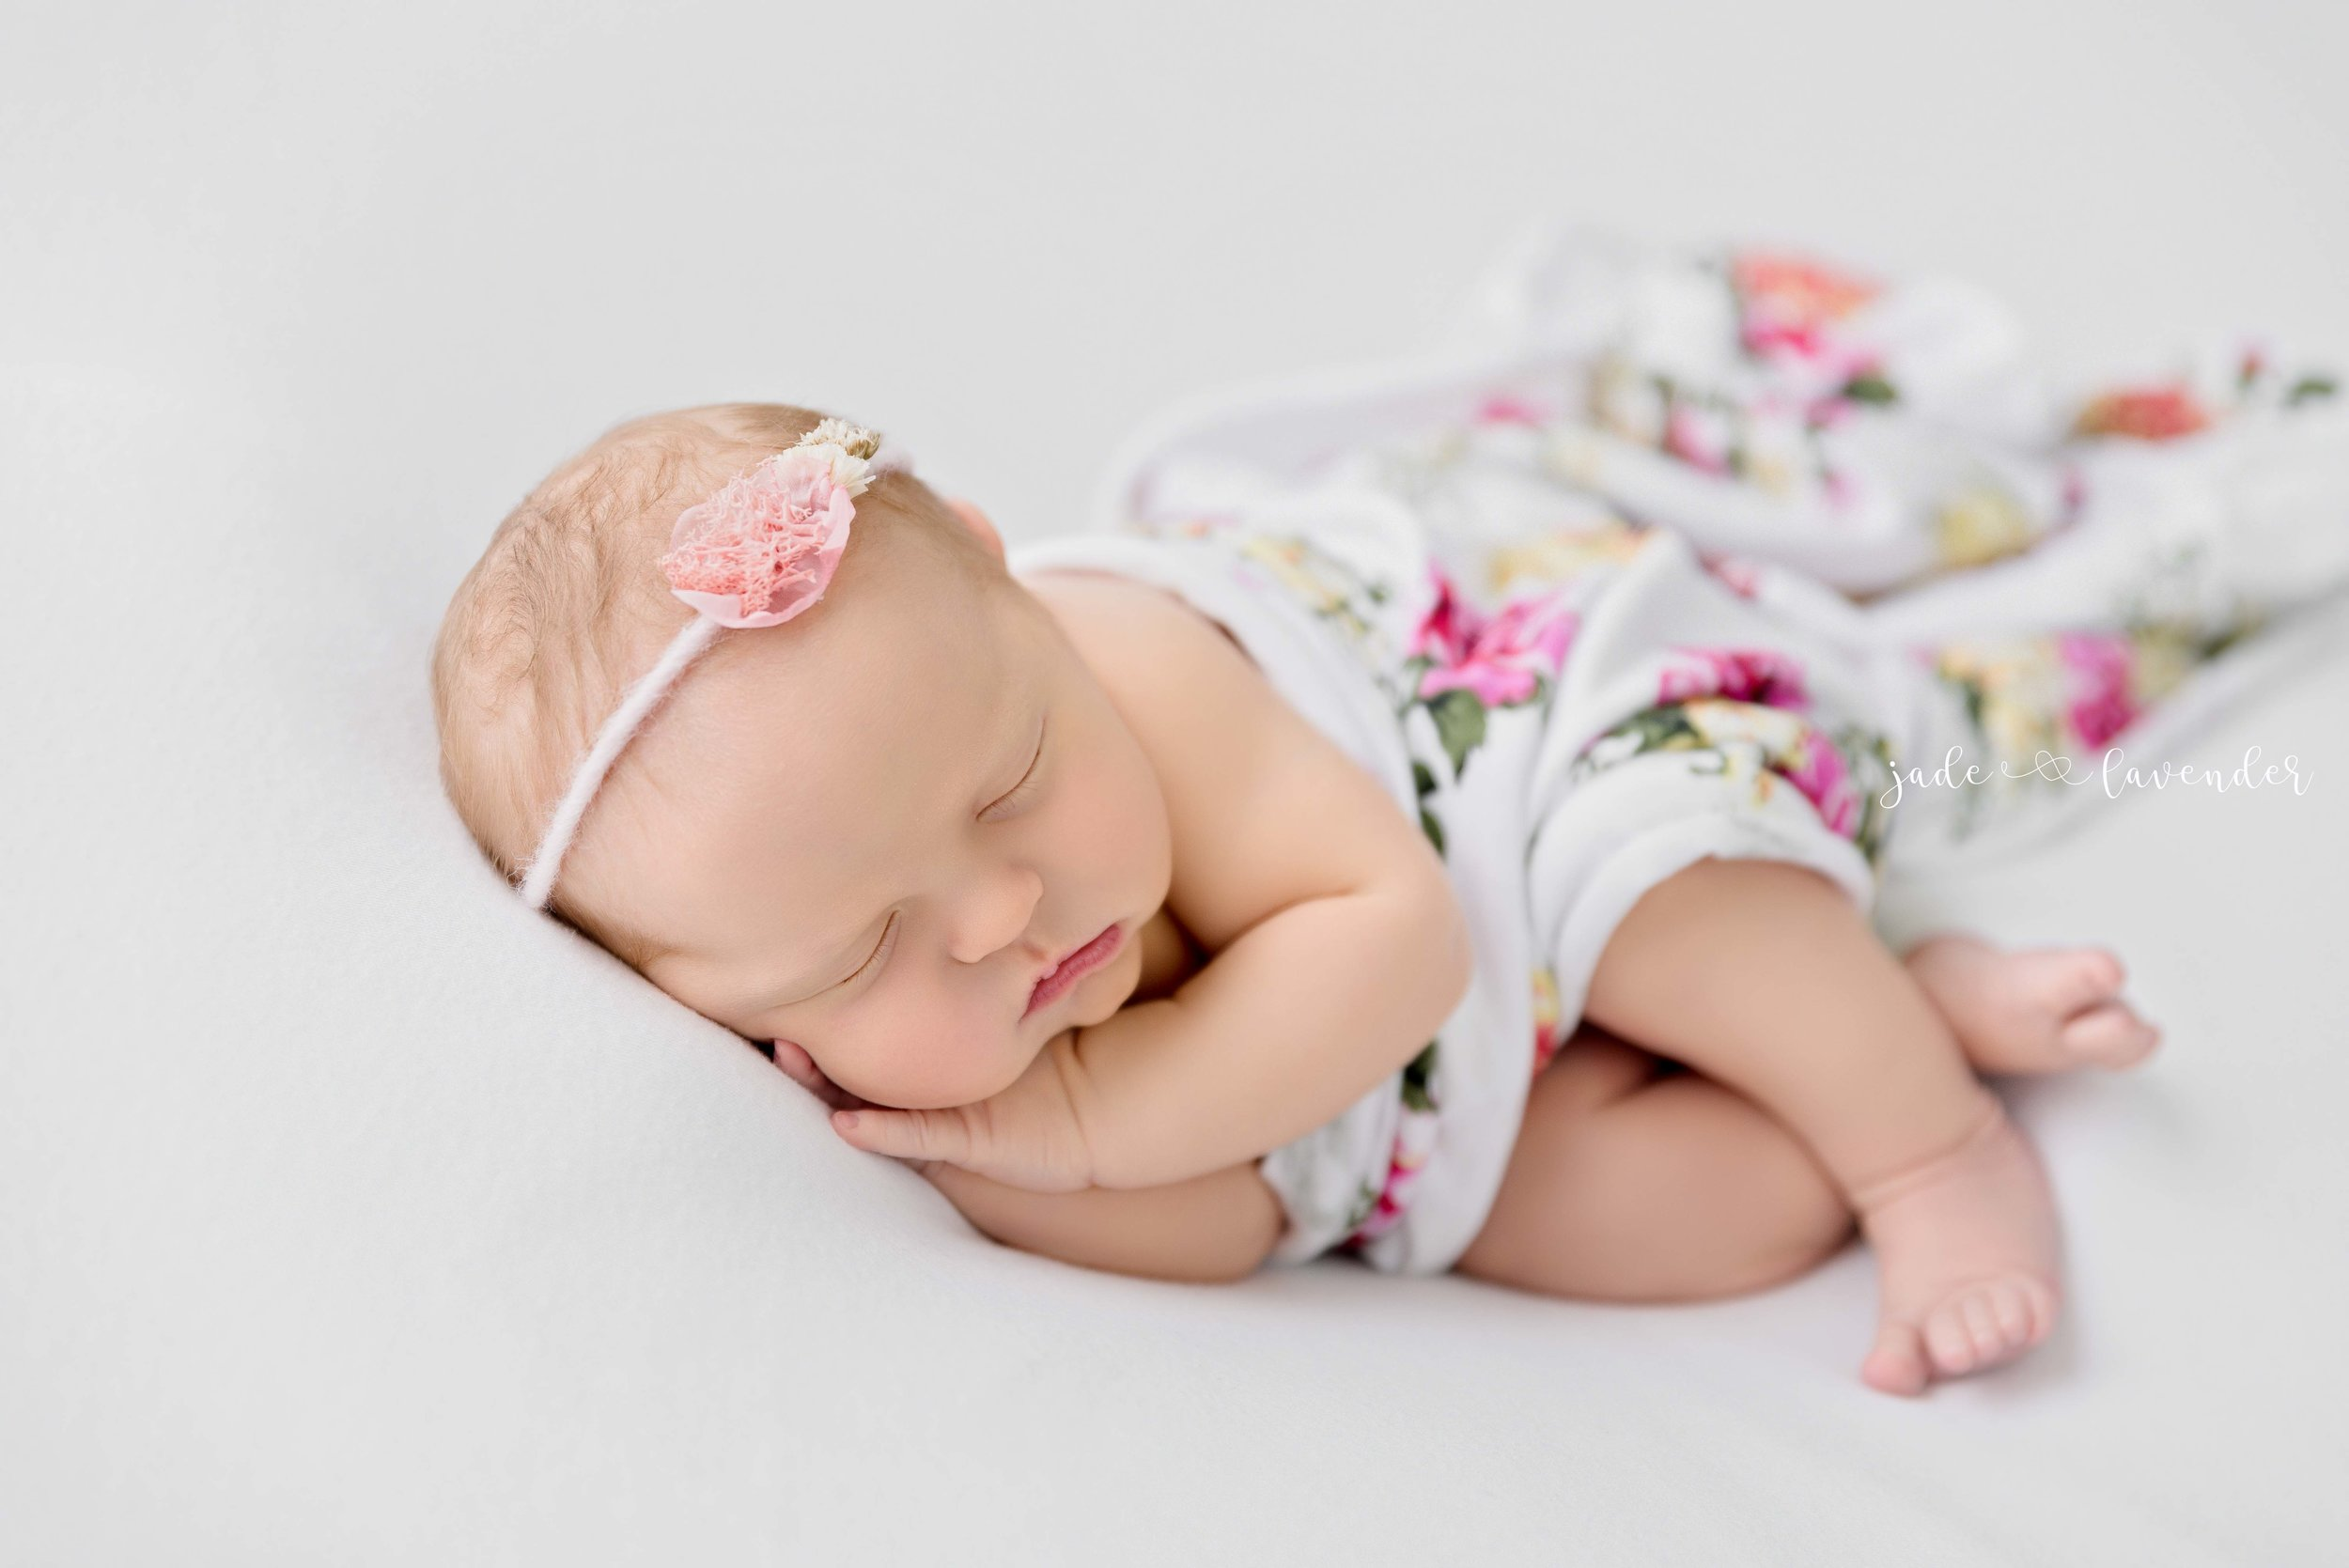 floral-newborn-photos-baby-images-amazing-spokane-washington.jpg